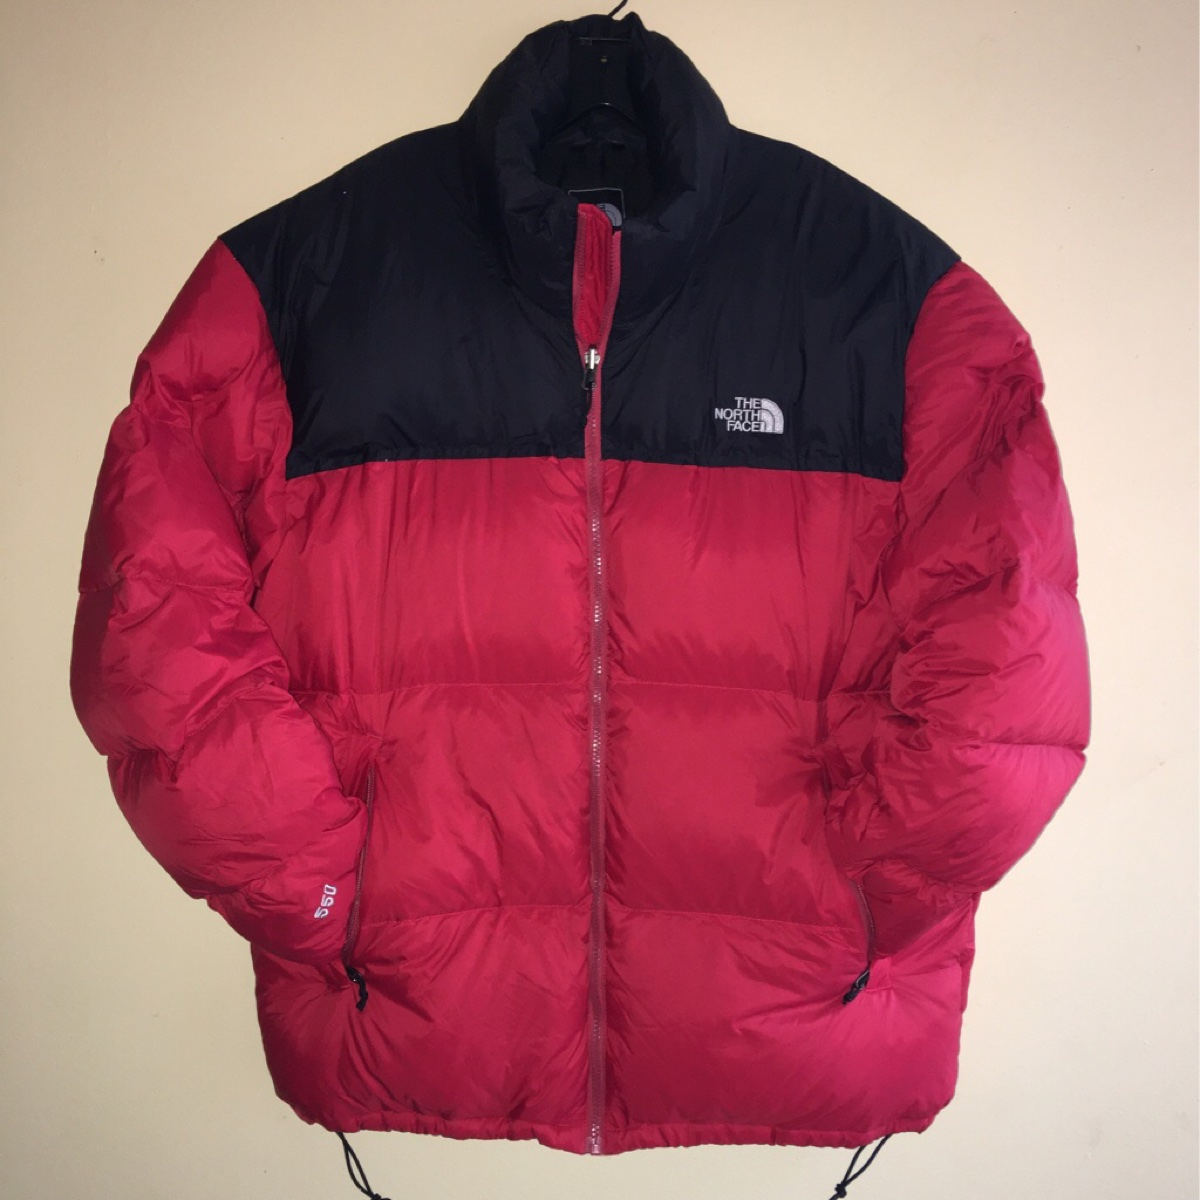 The North Face 700 Nuptse 90s Vintage Jacket